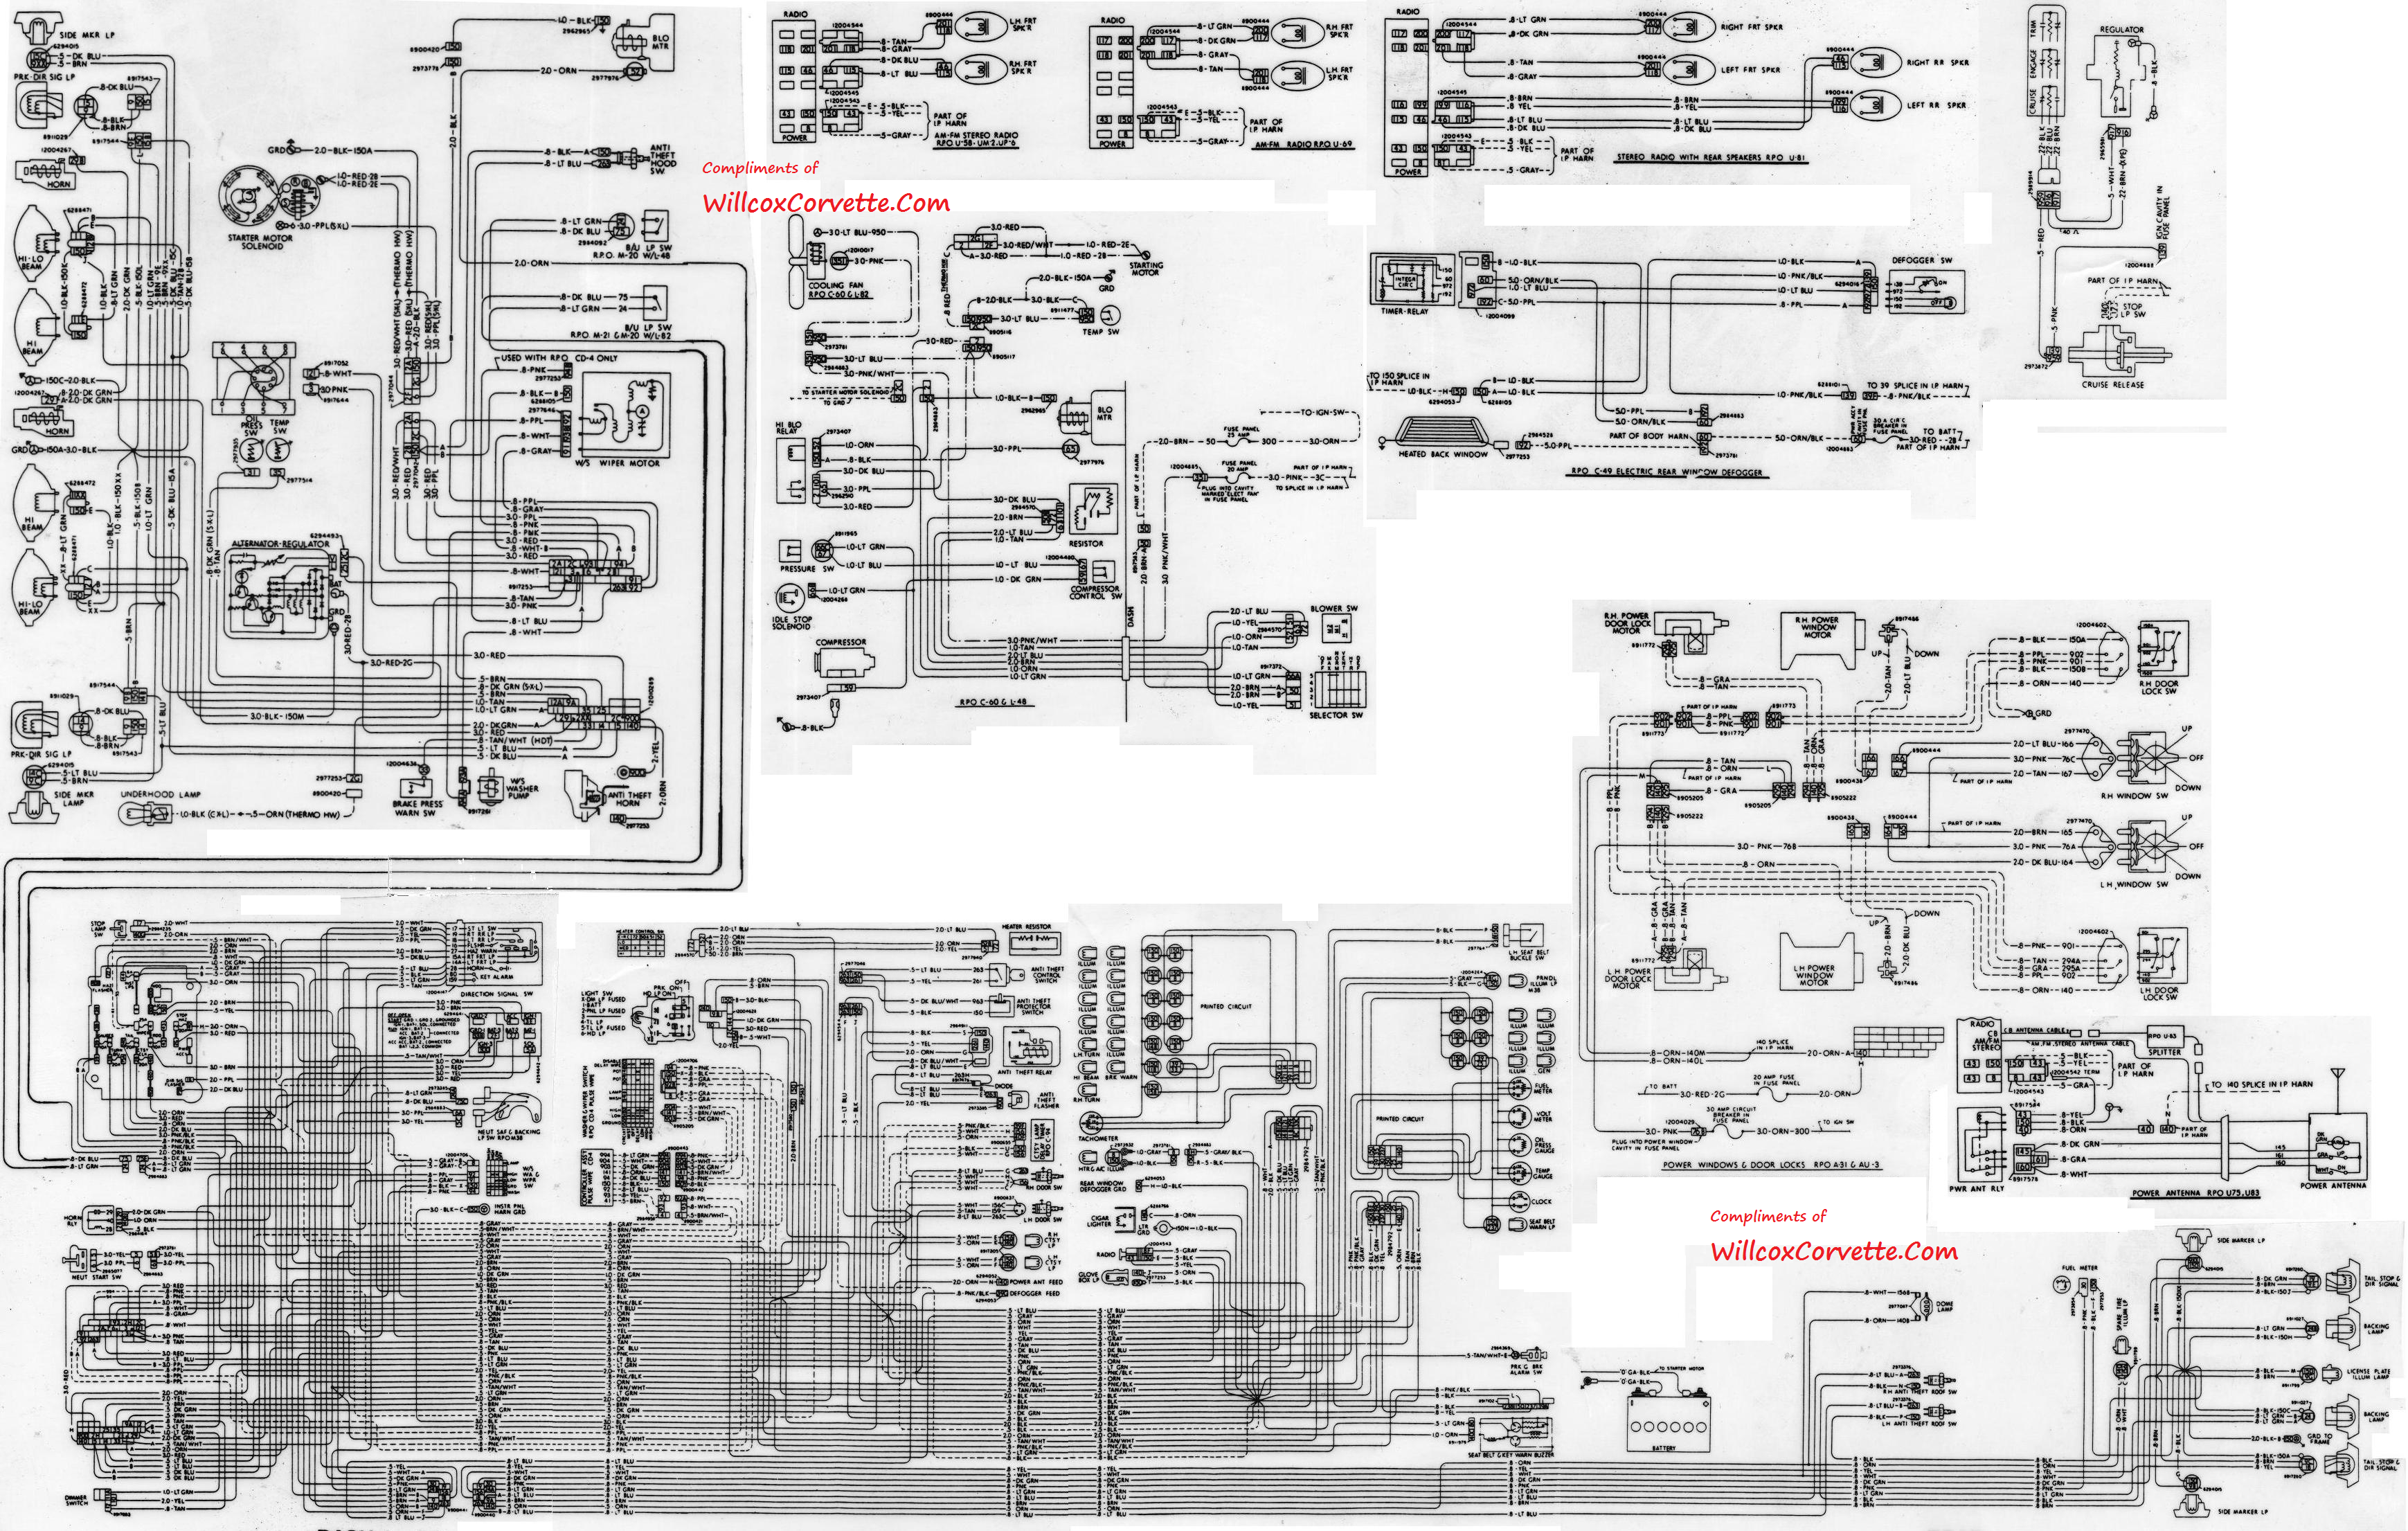 1979 wiring diagram corvetteforum chevrolet corvette forum rh corvetteforum com 1979 Corvette Wiring Diagram PDF 1968 Corvette Wiper Motor Wiring Diagram